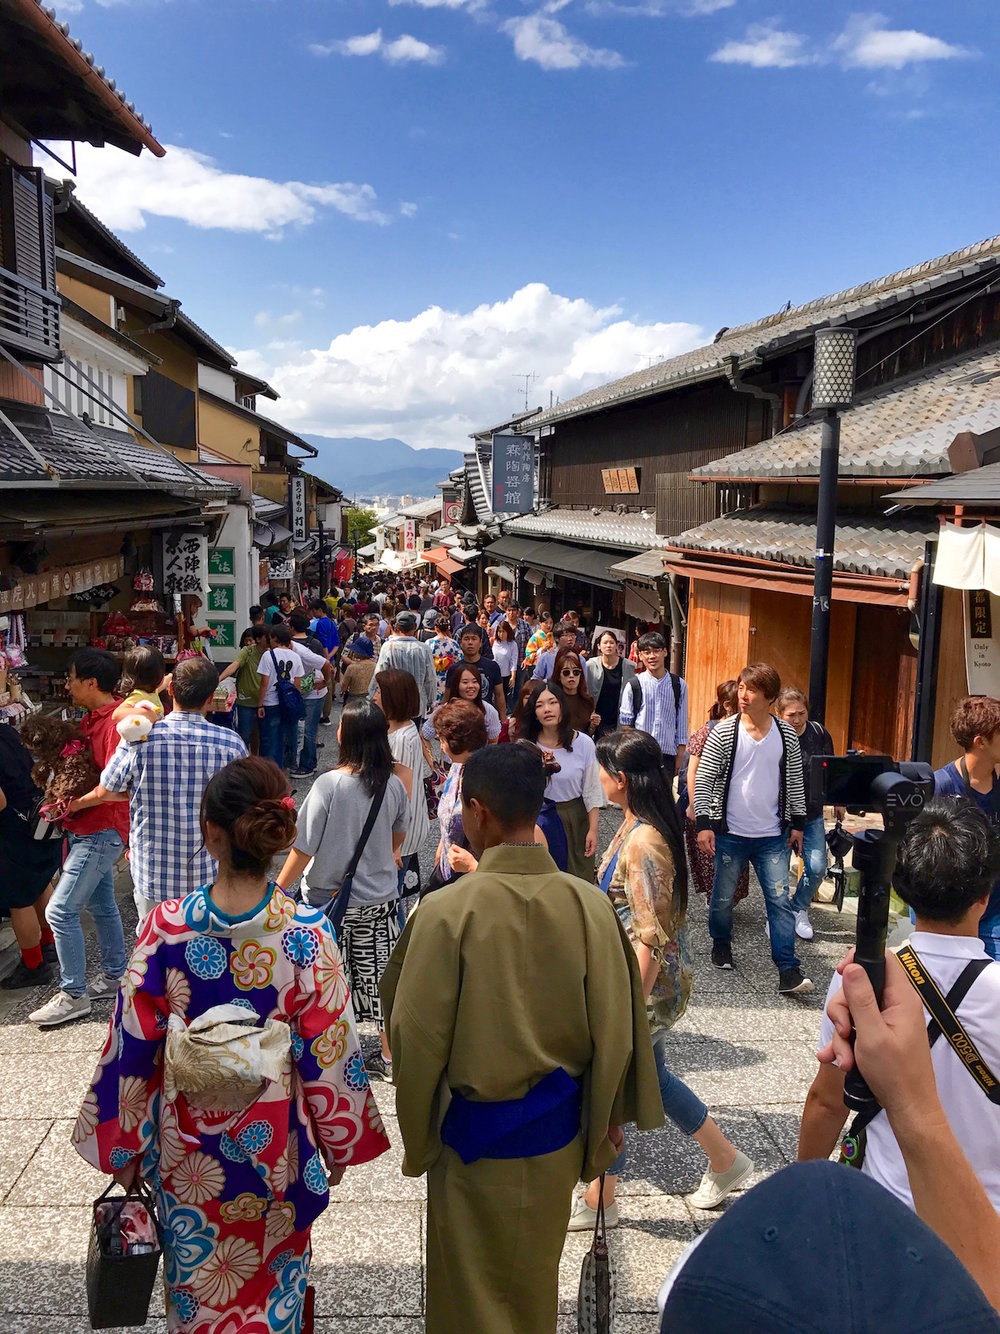 This is the NOT-so-quiet footpath we took down and away from Kiyomizudera Temple.